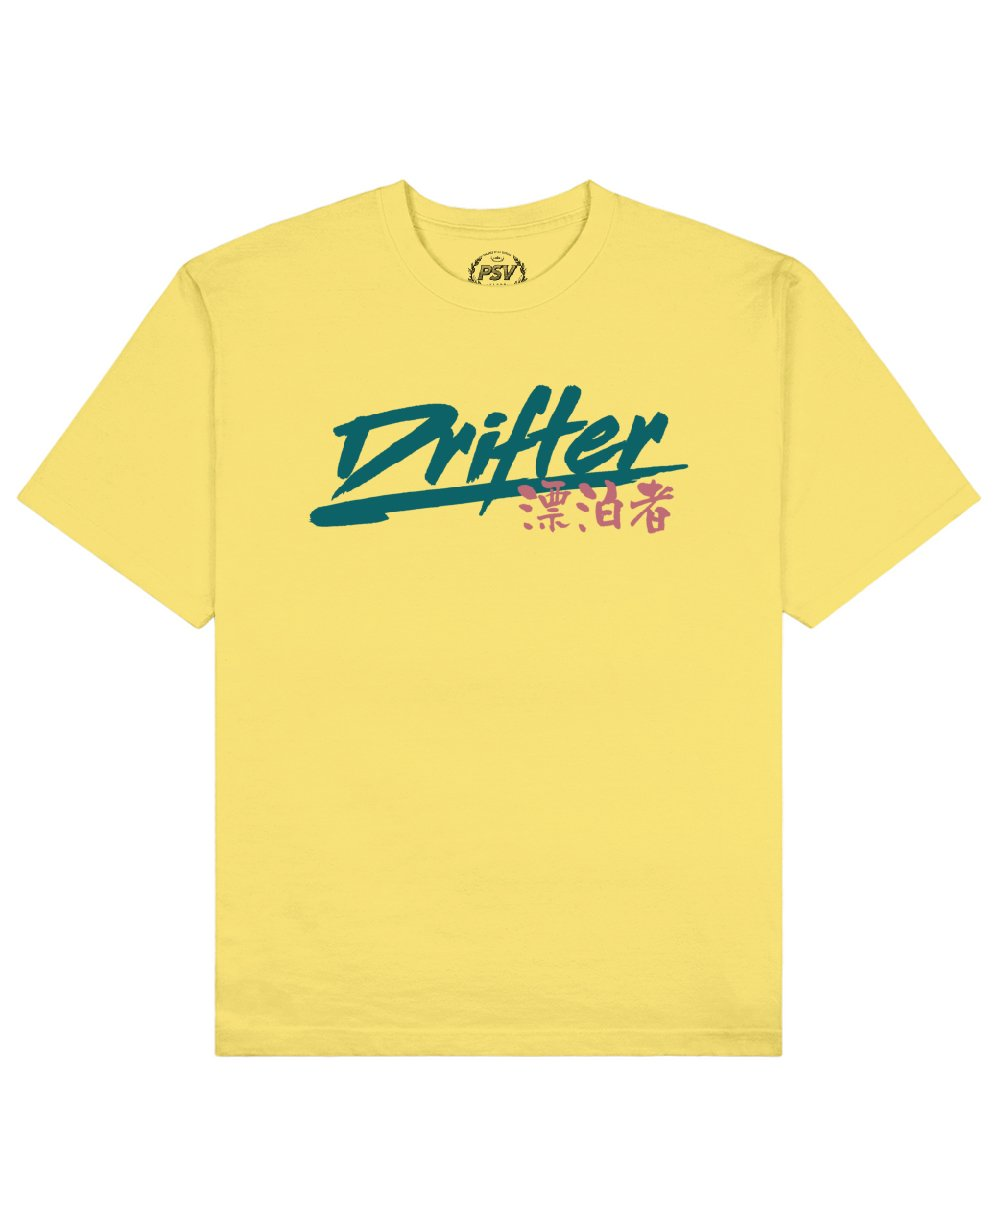 Drifter Print T-Shirt in Light Yellow - T-Shirts - PSV - BRANMA